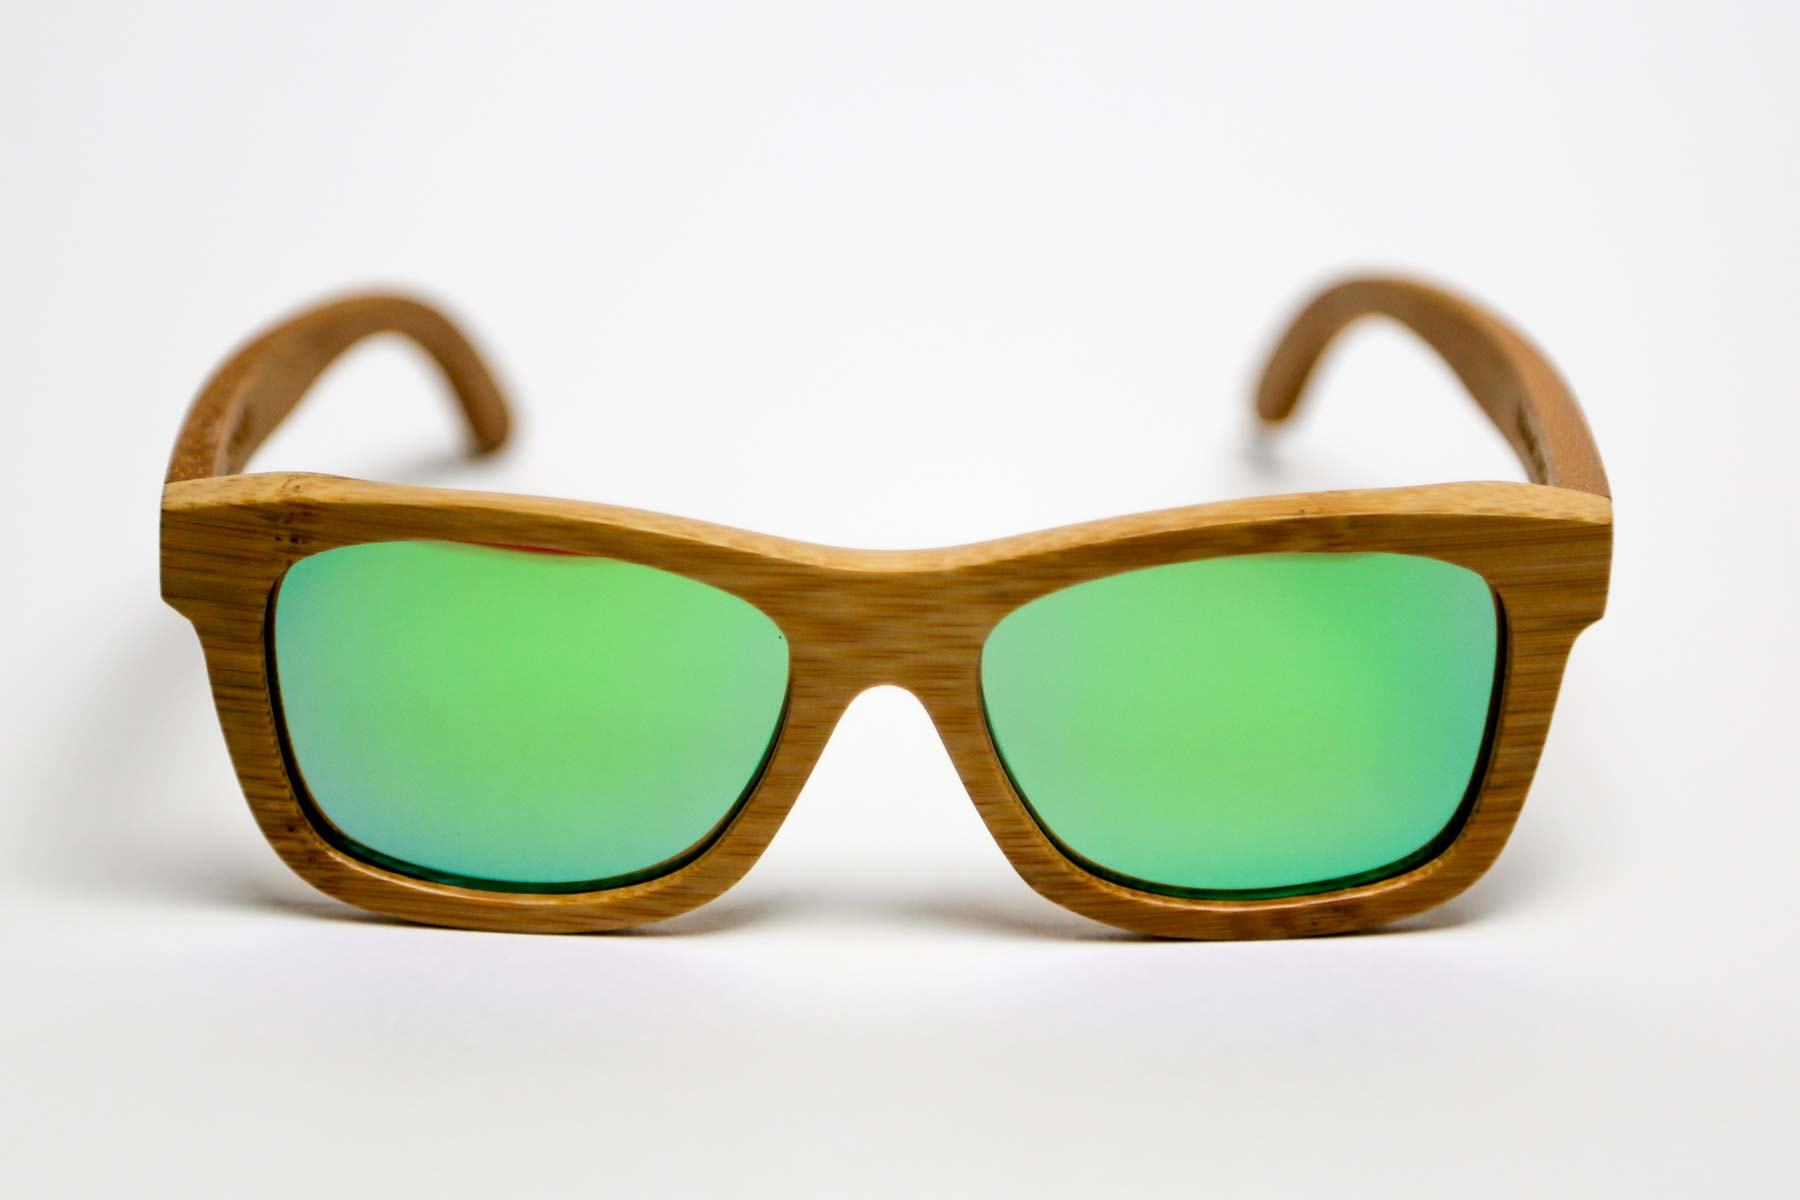 Sunglasses That Float  zephyr lt green tahoe timber sustainable style